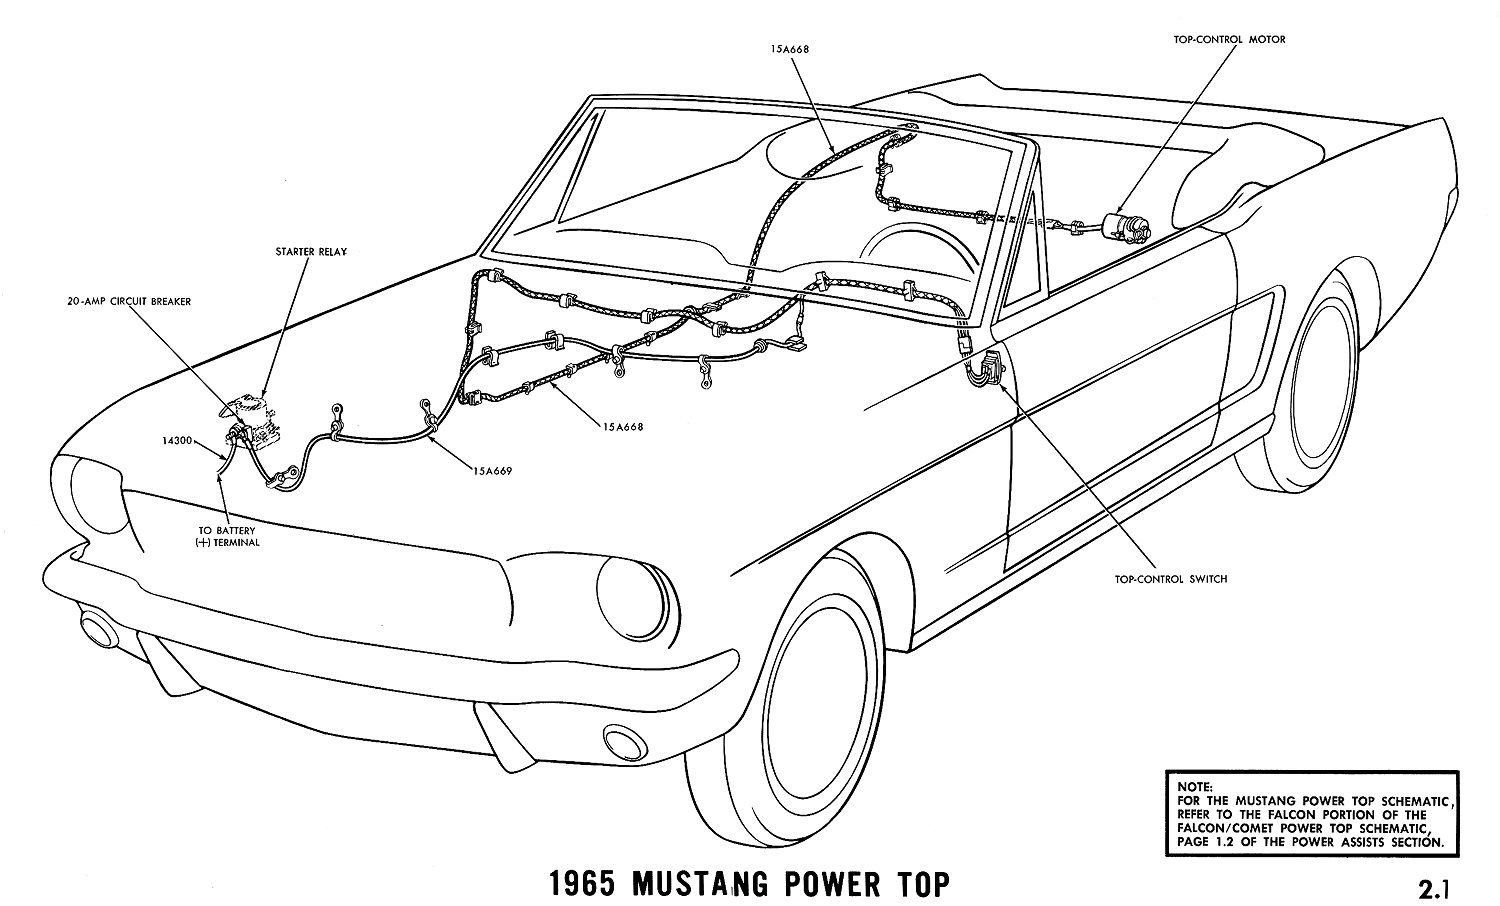 65 Mustang Radio Wiring Diagrams Library 1966 Color Diagram 1965 Power Top Pictorial Or Schematic